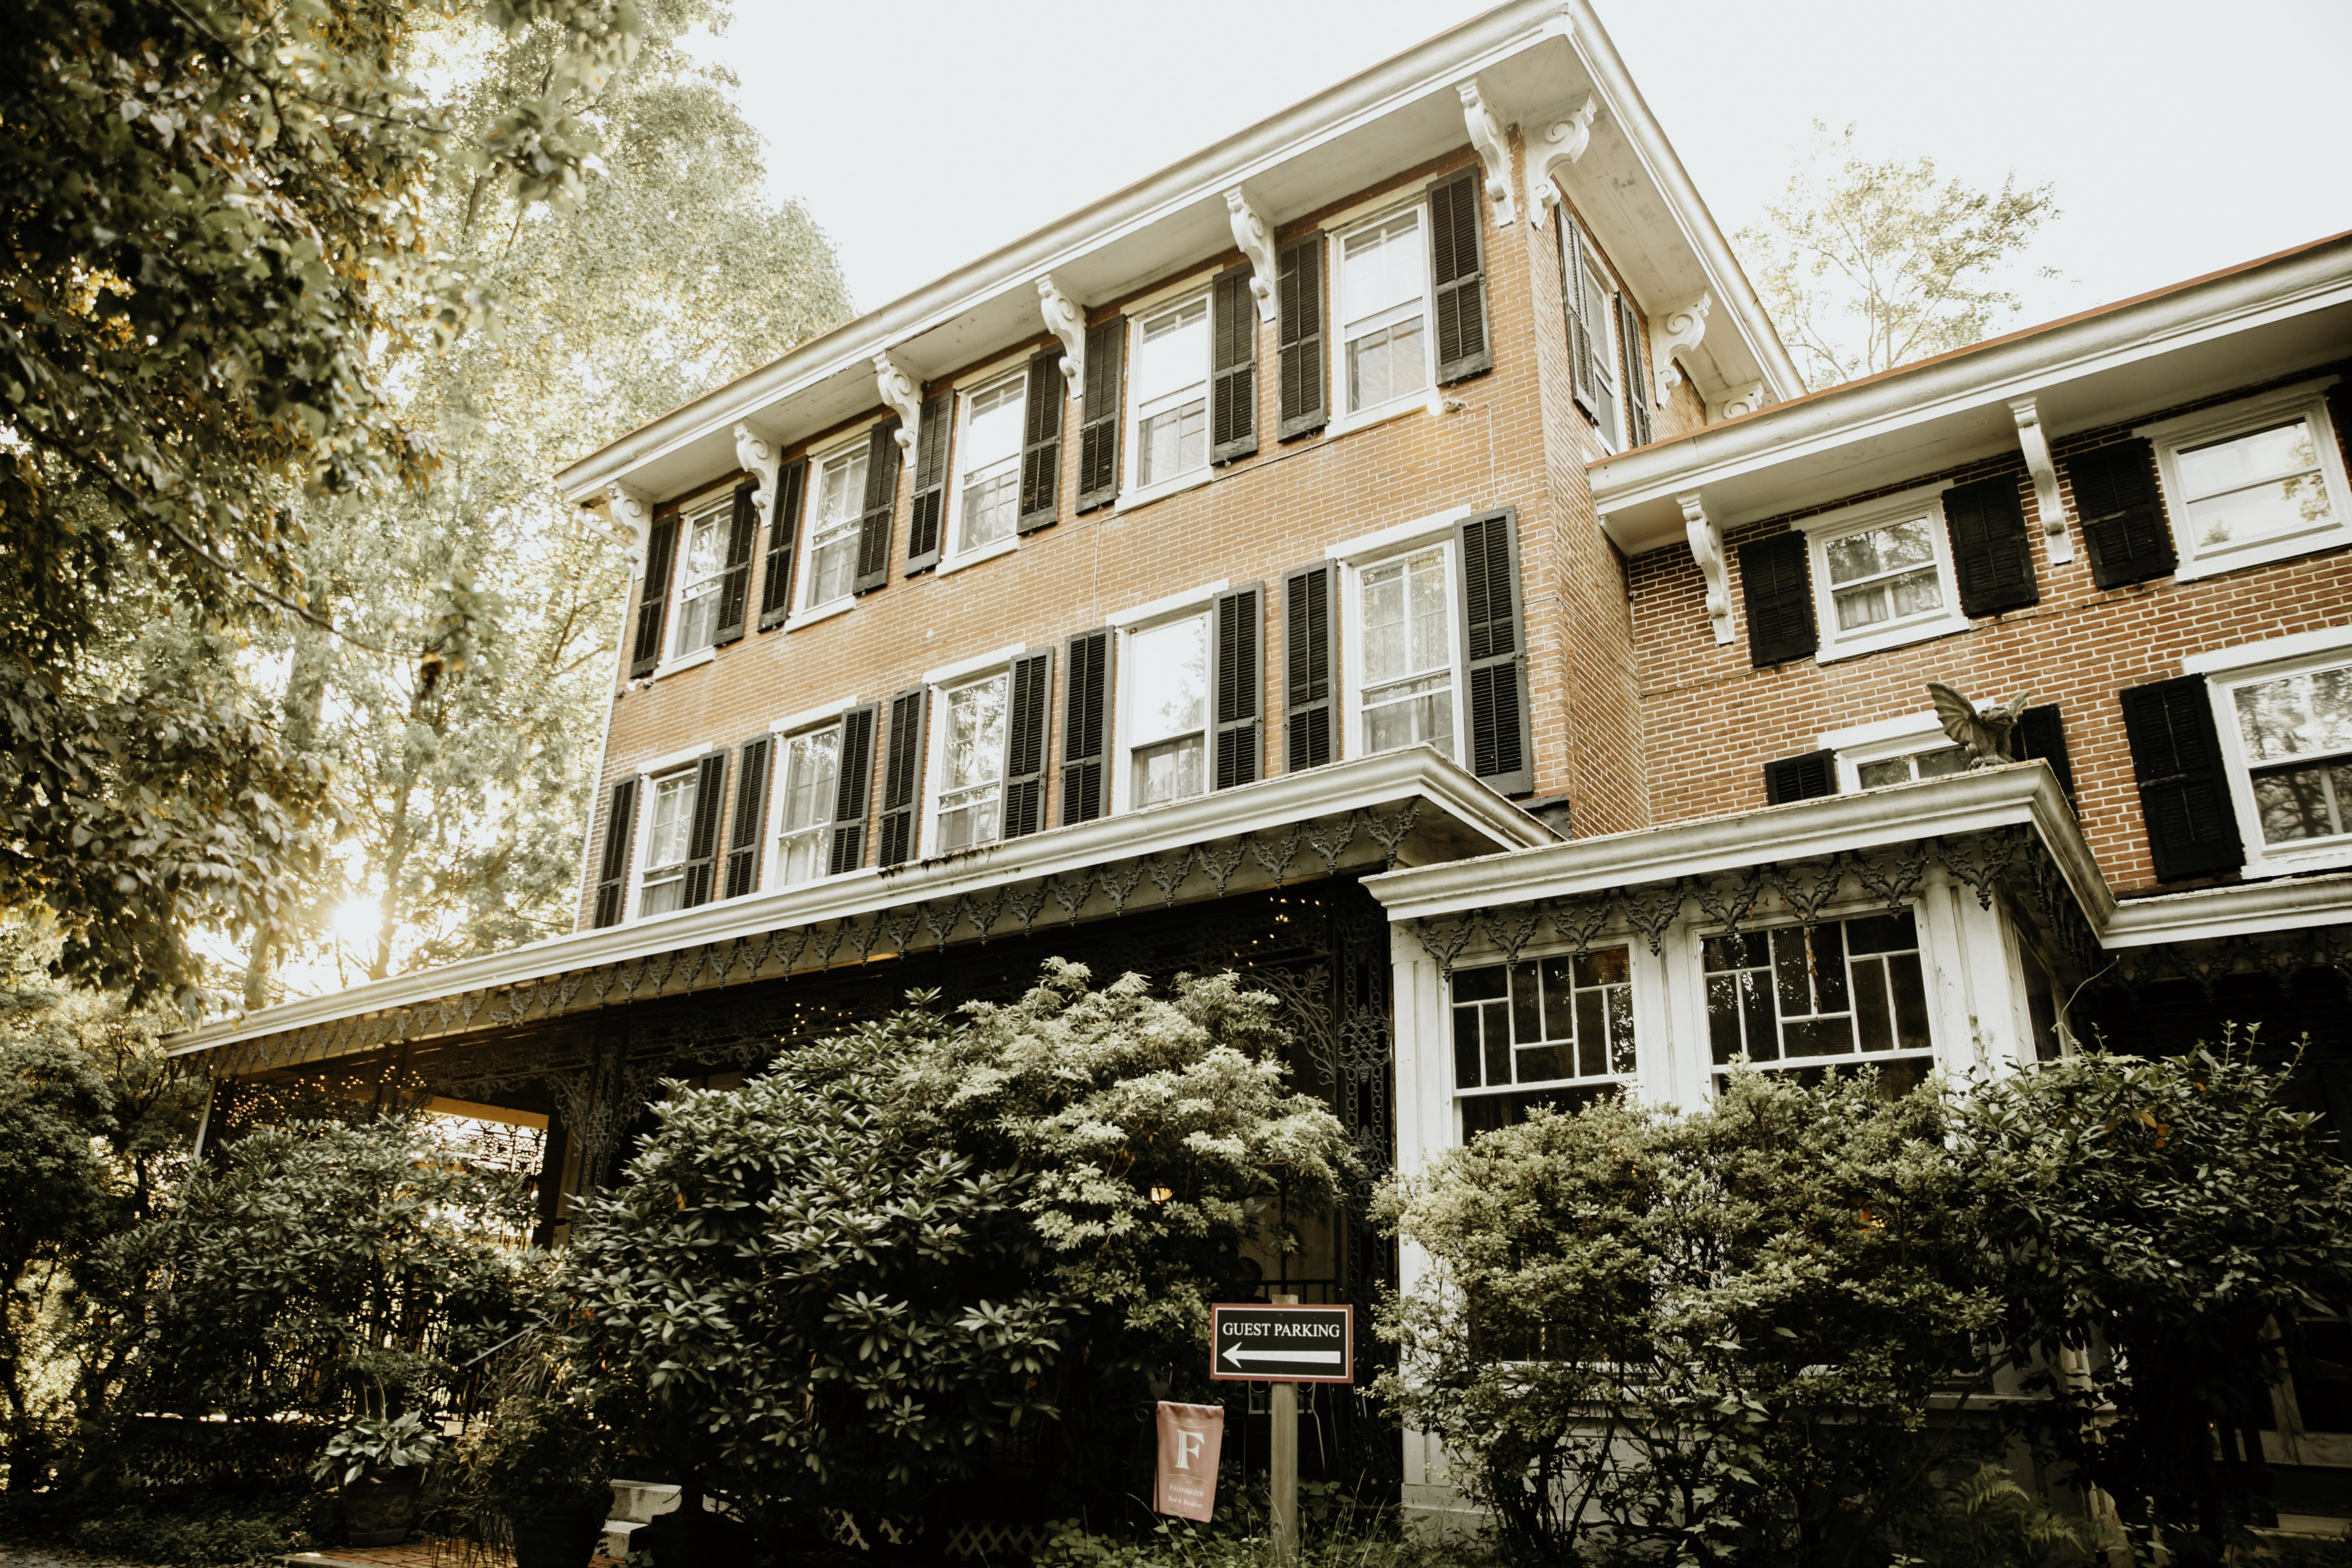 A large brick building at Faunbrook Bed & Breakfast.